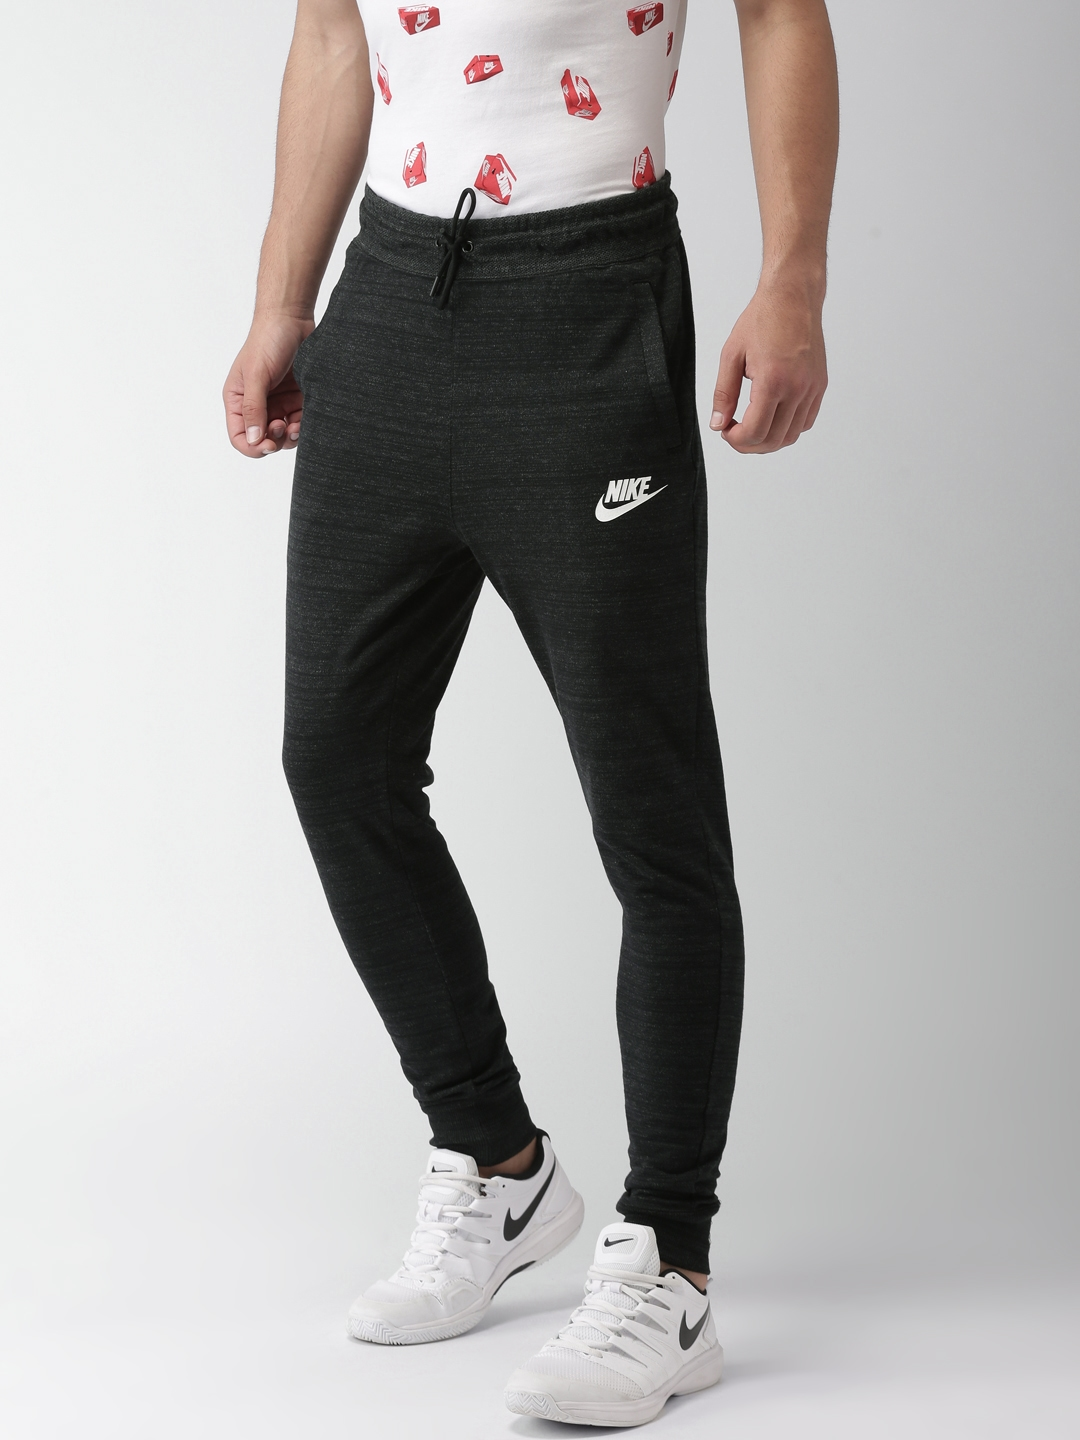 11482307688c Buy Nike Men Black AS M NSW AV15 KNIT Advance 15 Regular Joggers ...